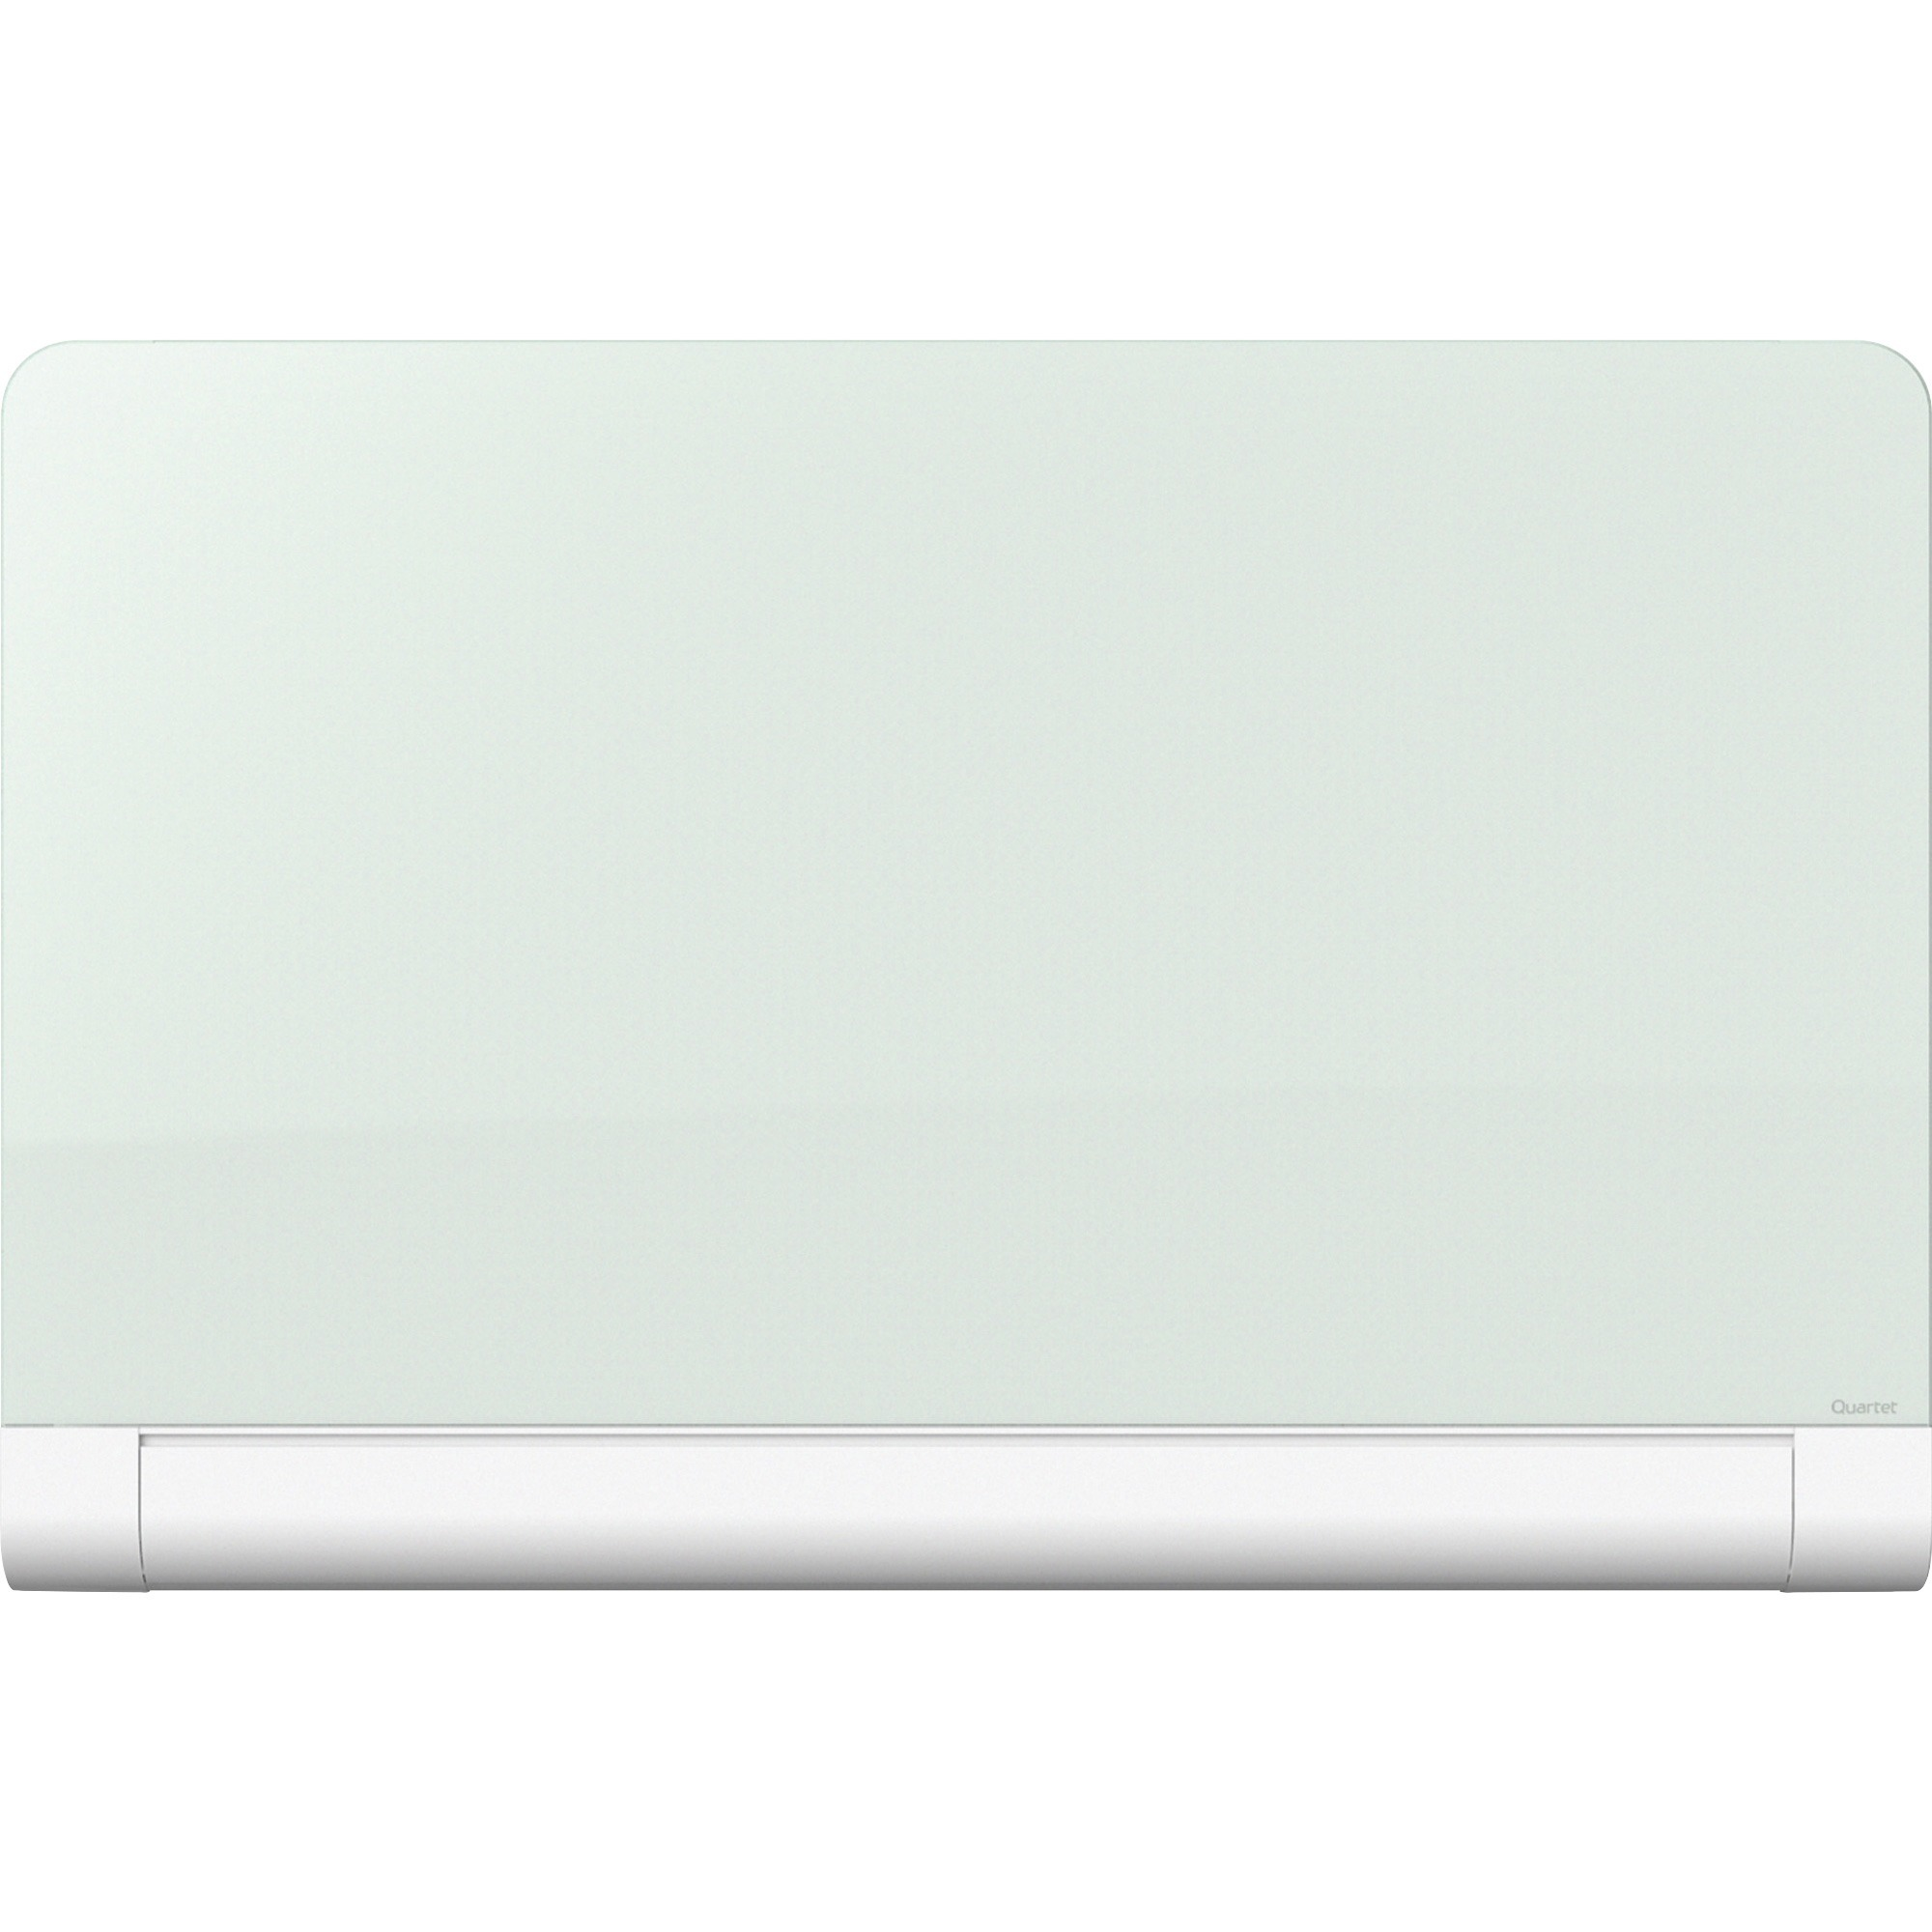 Acco Brands Corporation Quartet® Horizon Magnetic Glass Dry-erase Board With Concealed Tray - 50 (4.2 Ft) Width X 28 (2.3 Ft) Height - White Tempered Glass Surface - Rectangle - Horizontal/vertical - Mount - 1 Each